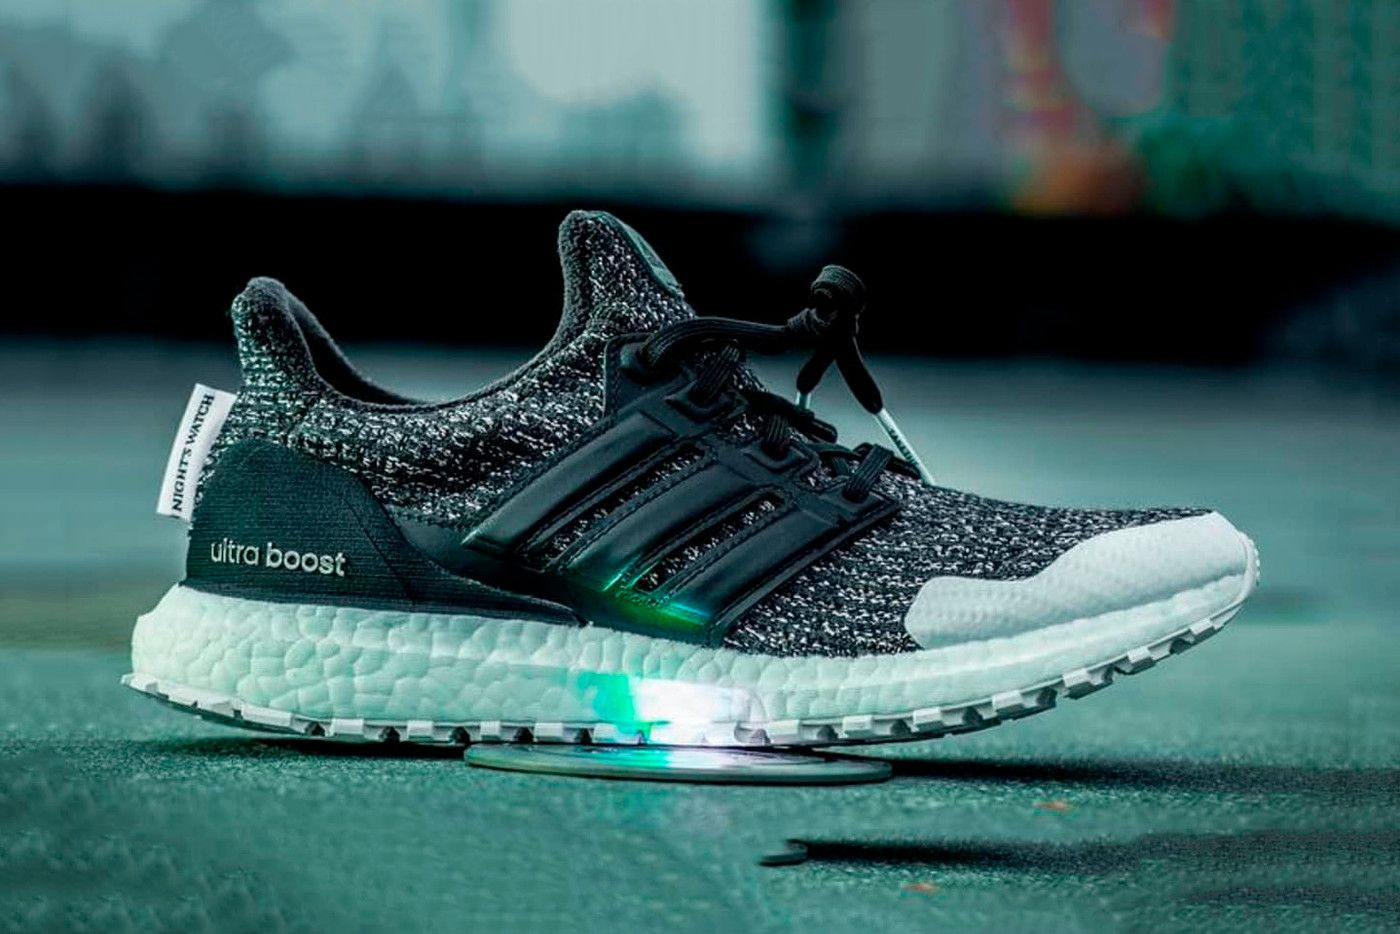 f3a9ed68d37  Game of Thrones  x adidas UltraBOOST